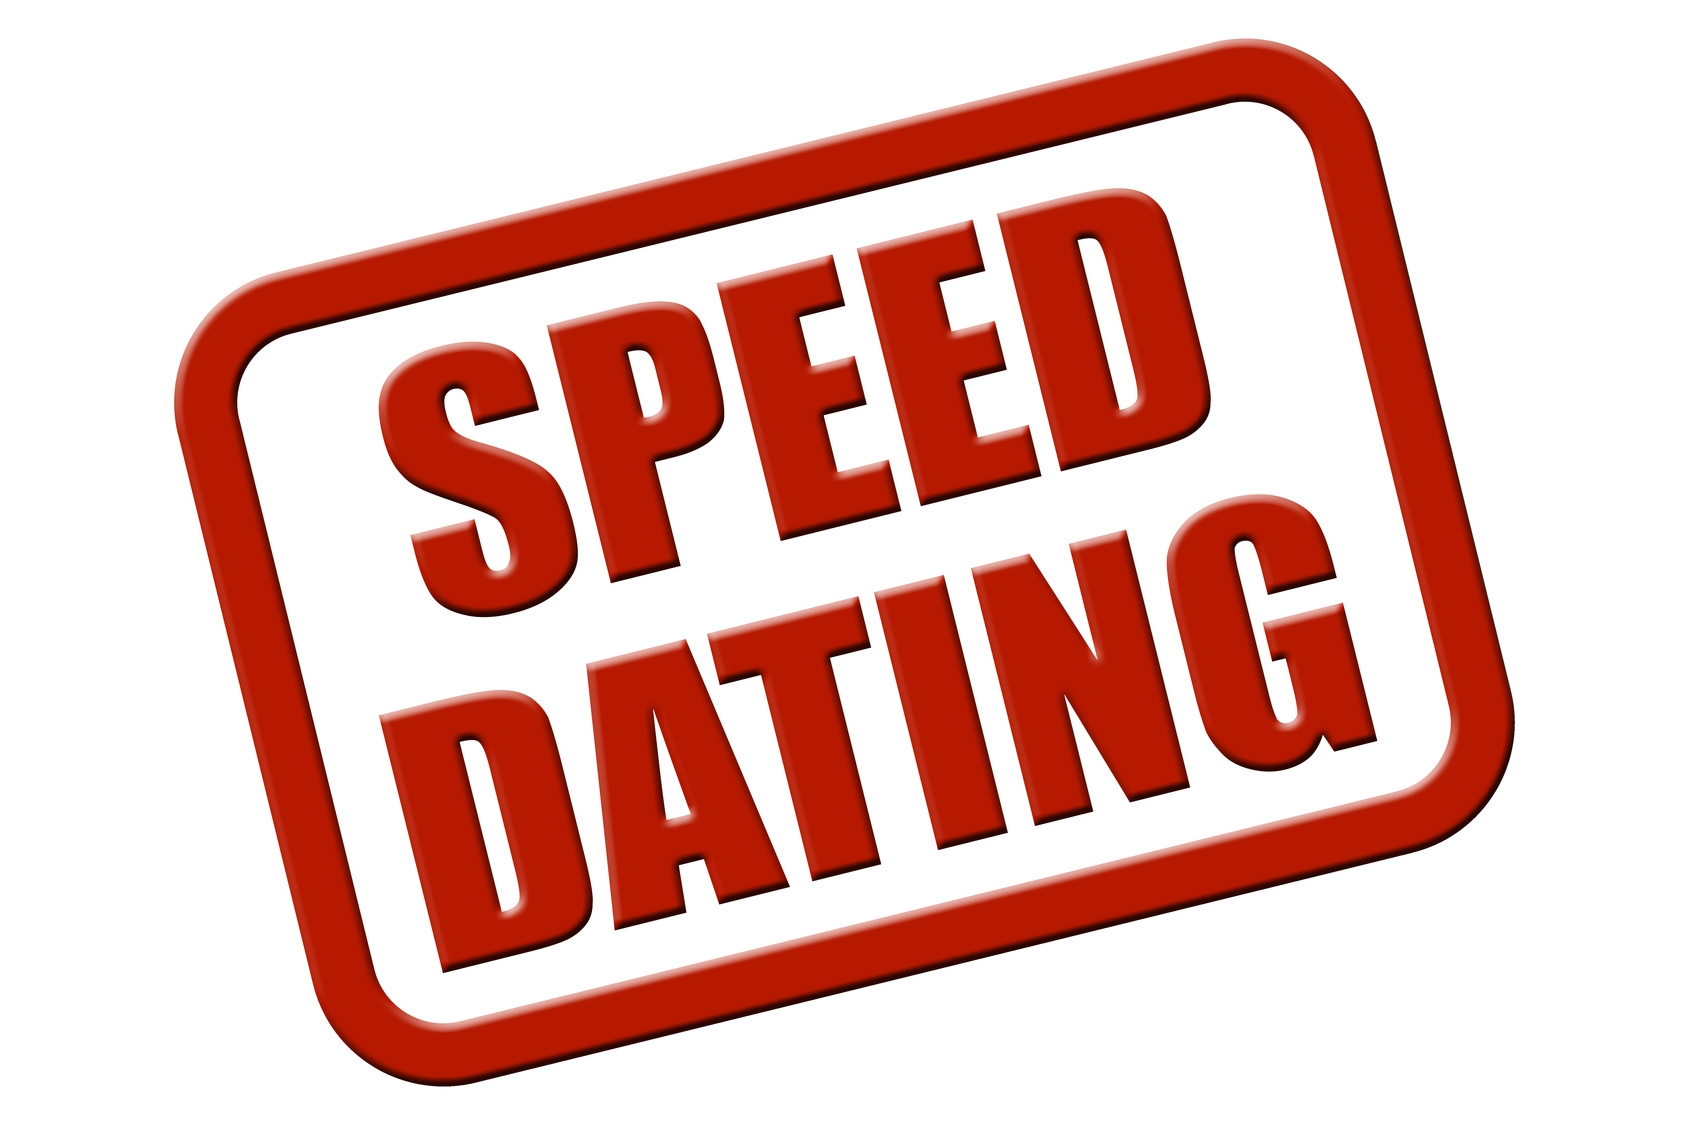 Speed dating newark de